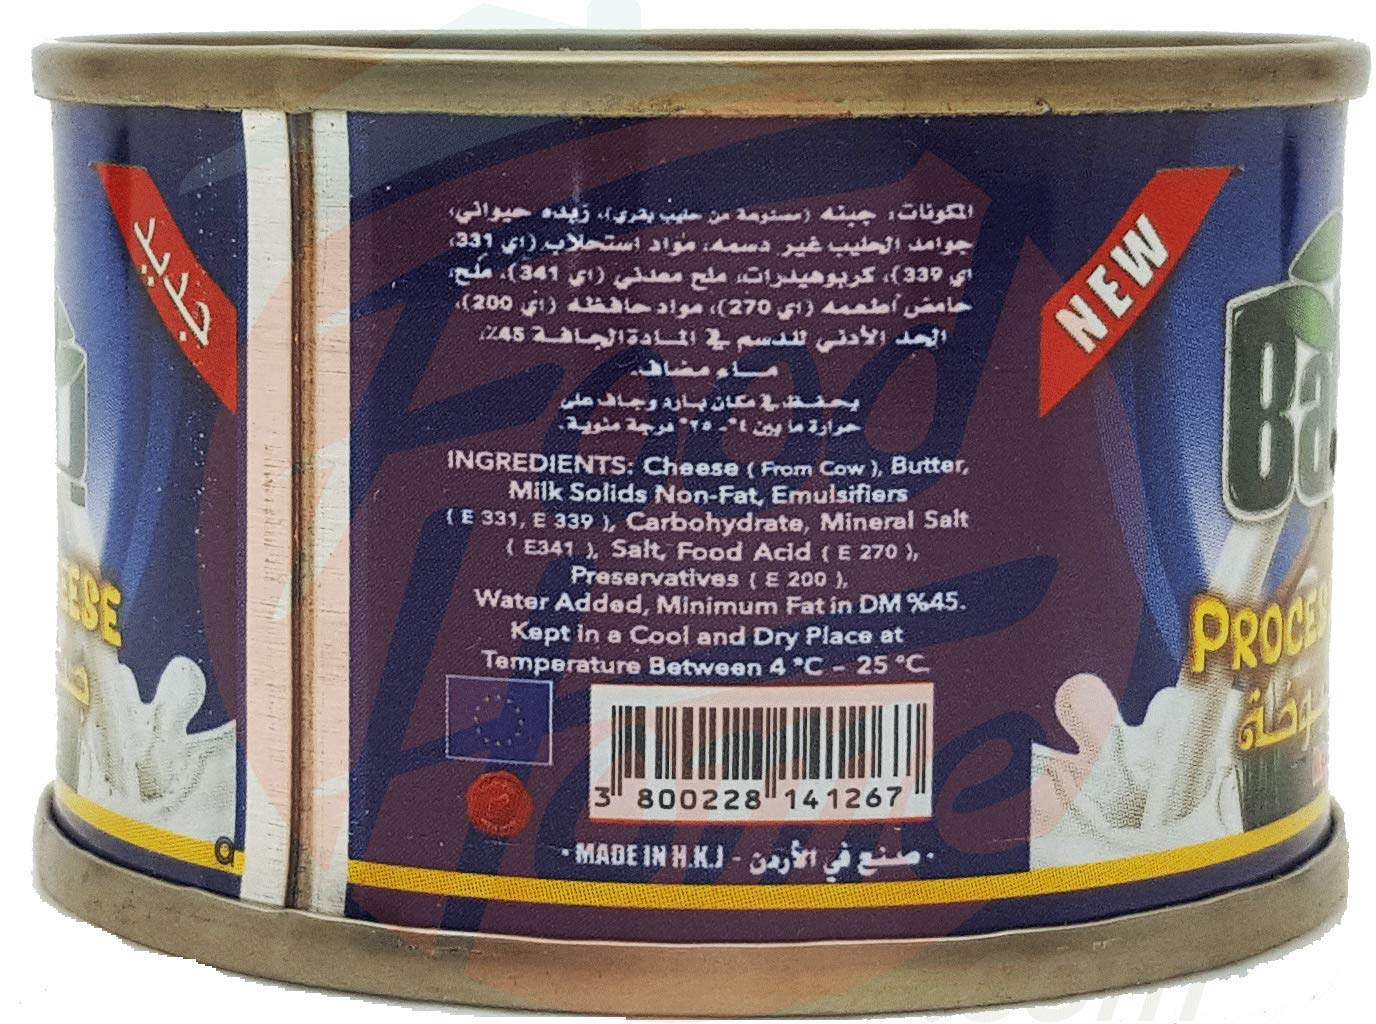 Balkan processed cheese spread, 56-gram pull-top can (pack of 1) by Balkan (Image #1)